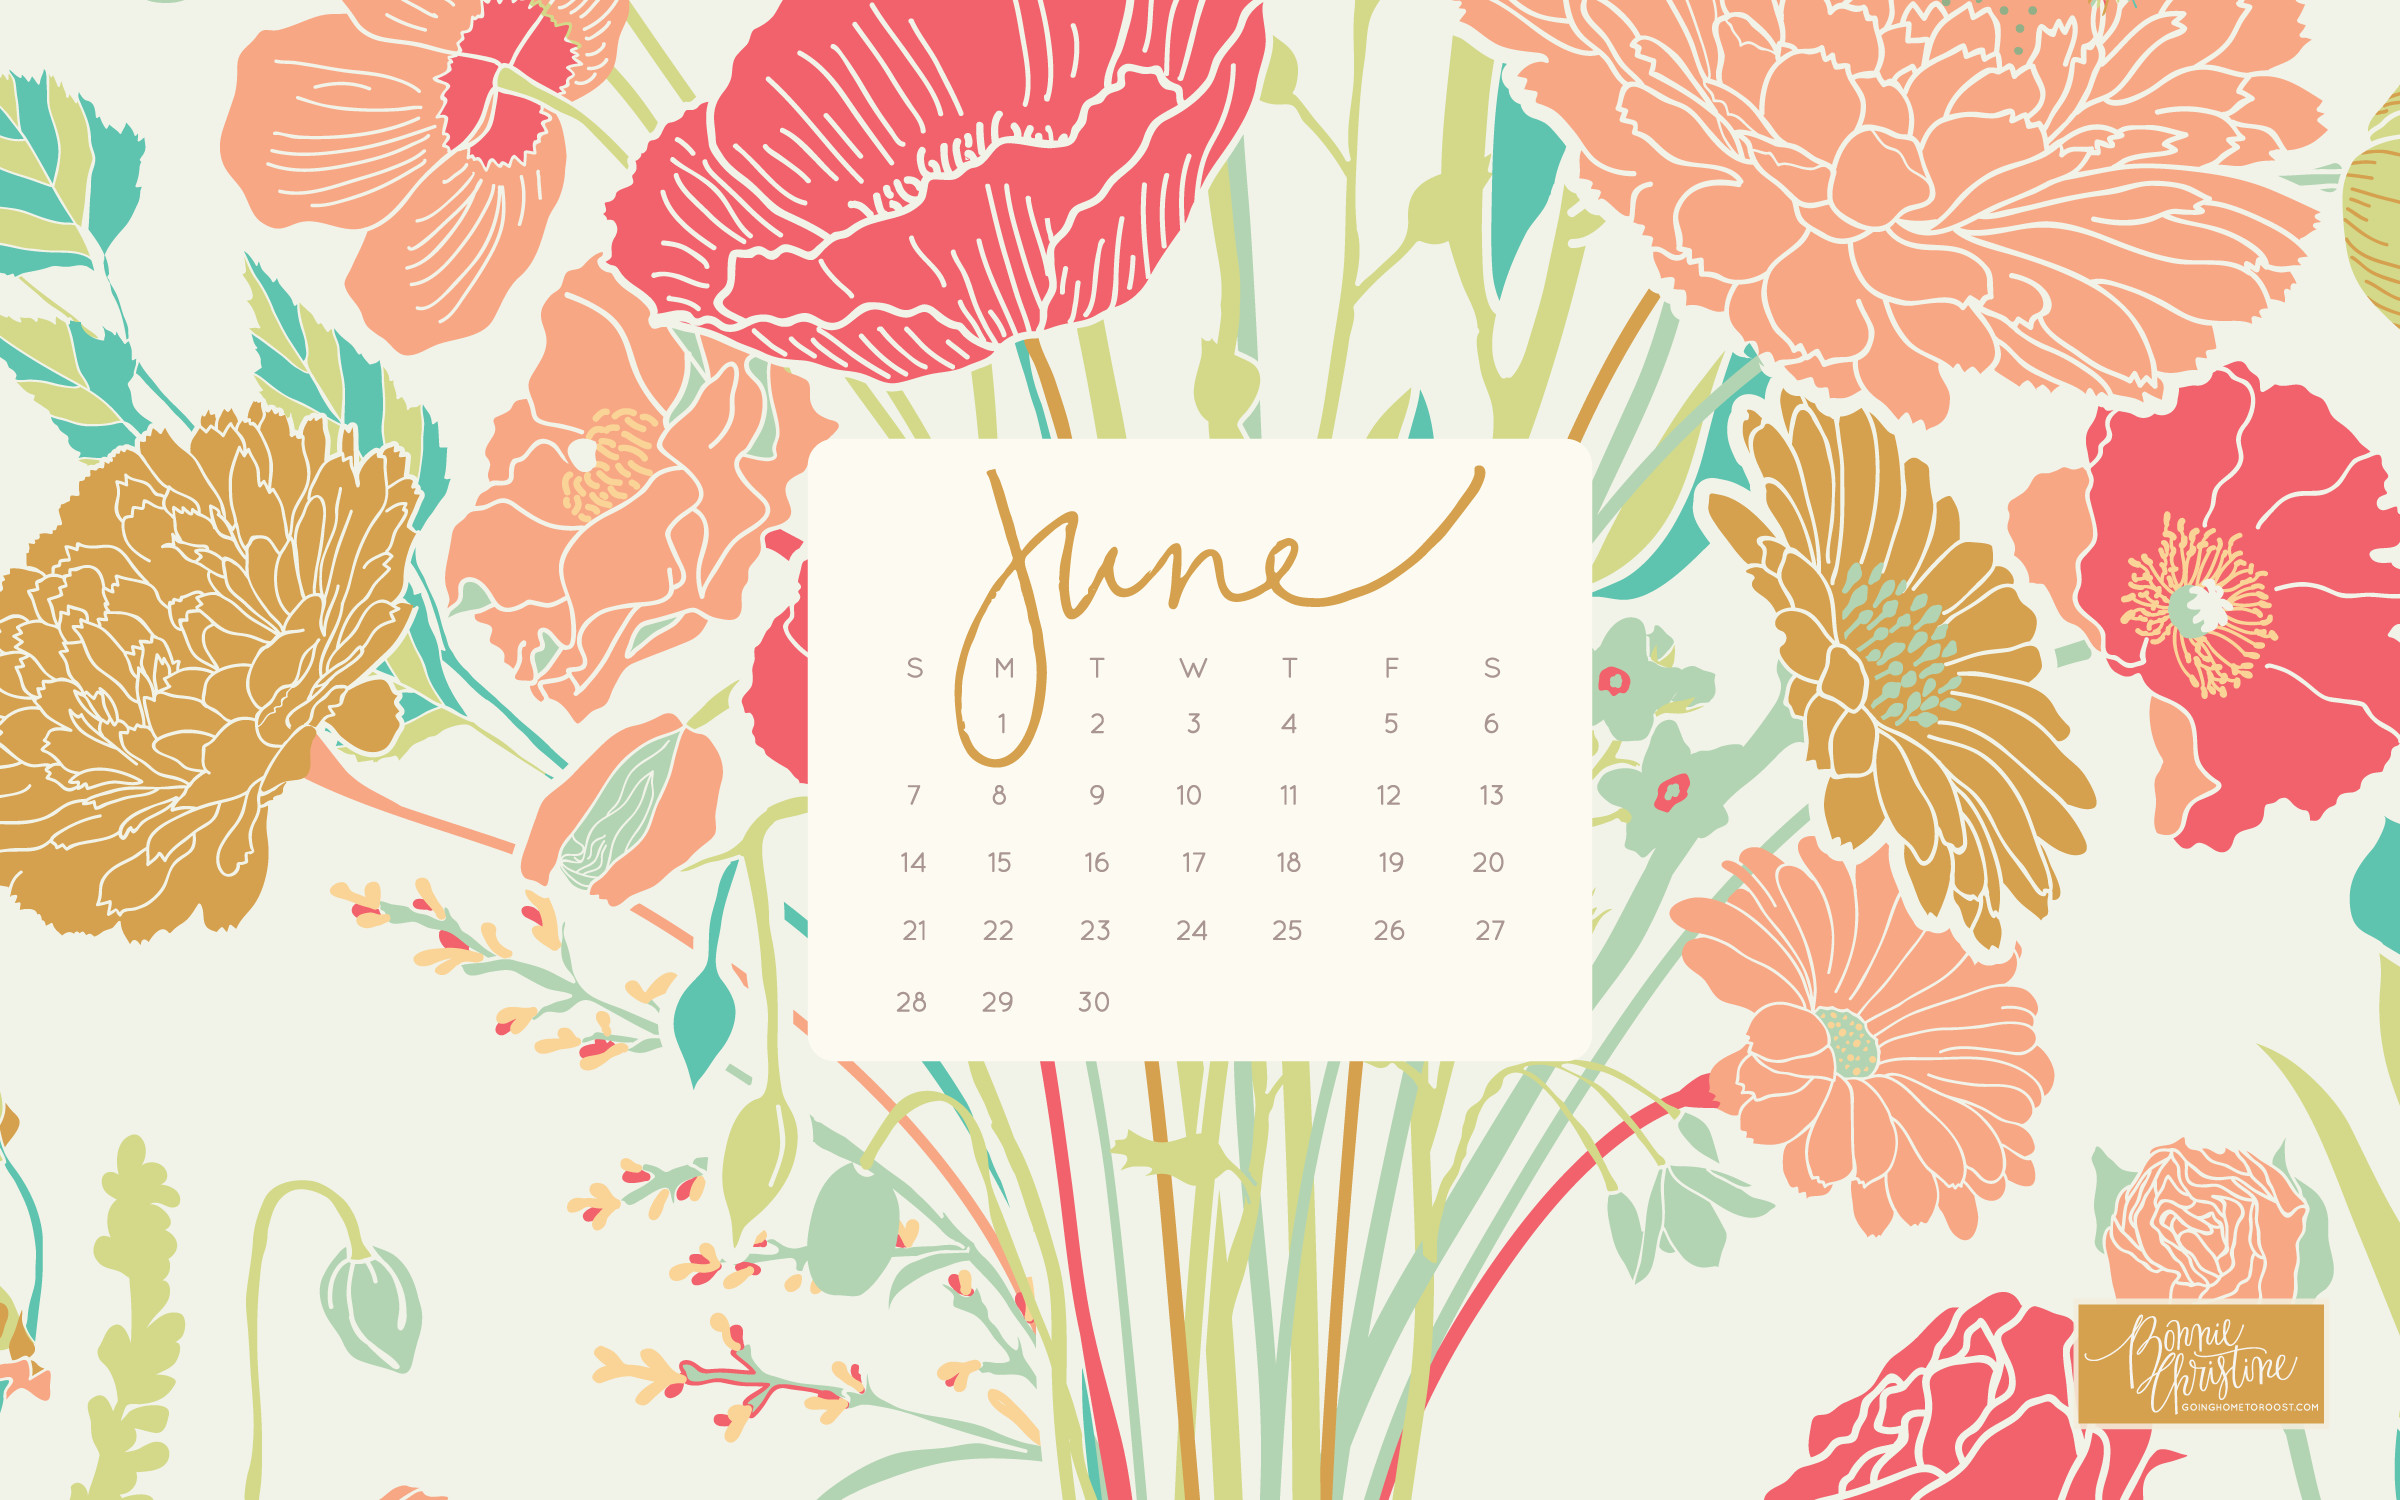 2400x1500 June 2015 Desktop + Smartphone Calendars